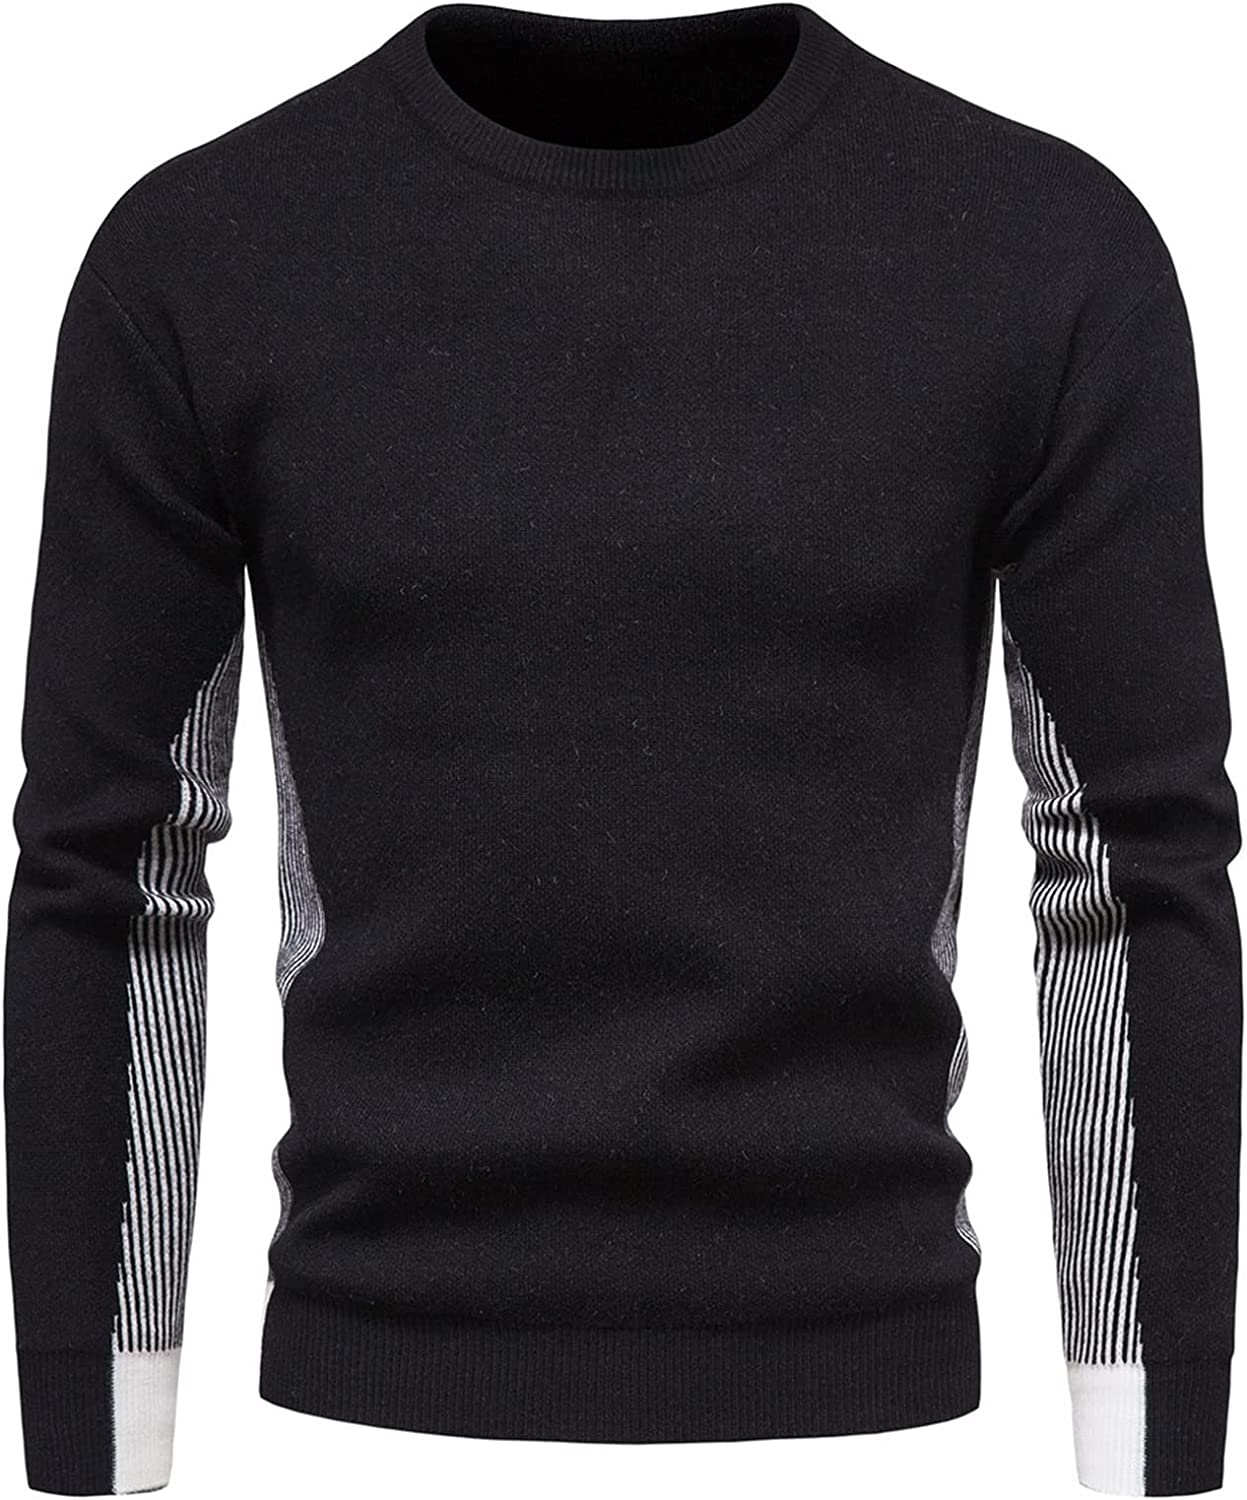 EverNight Men's Crewneck Sweatshirt,Casual Lightweight Striped Cotton Jumper,Ribbed Knitted Pullover